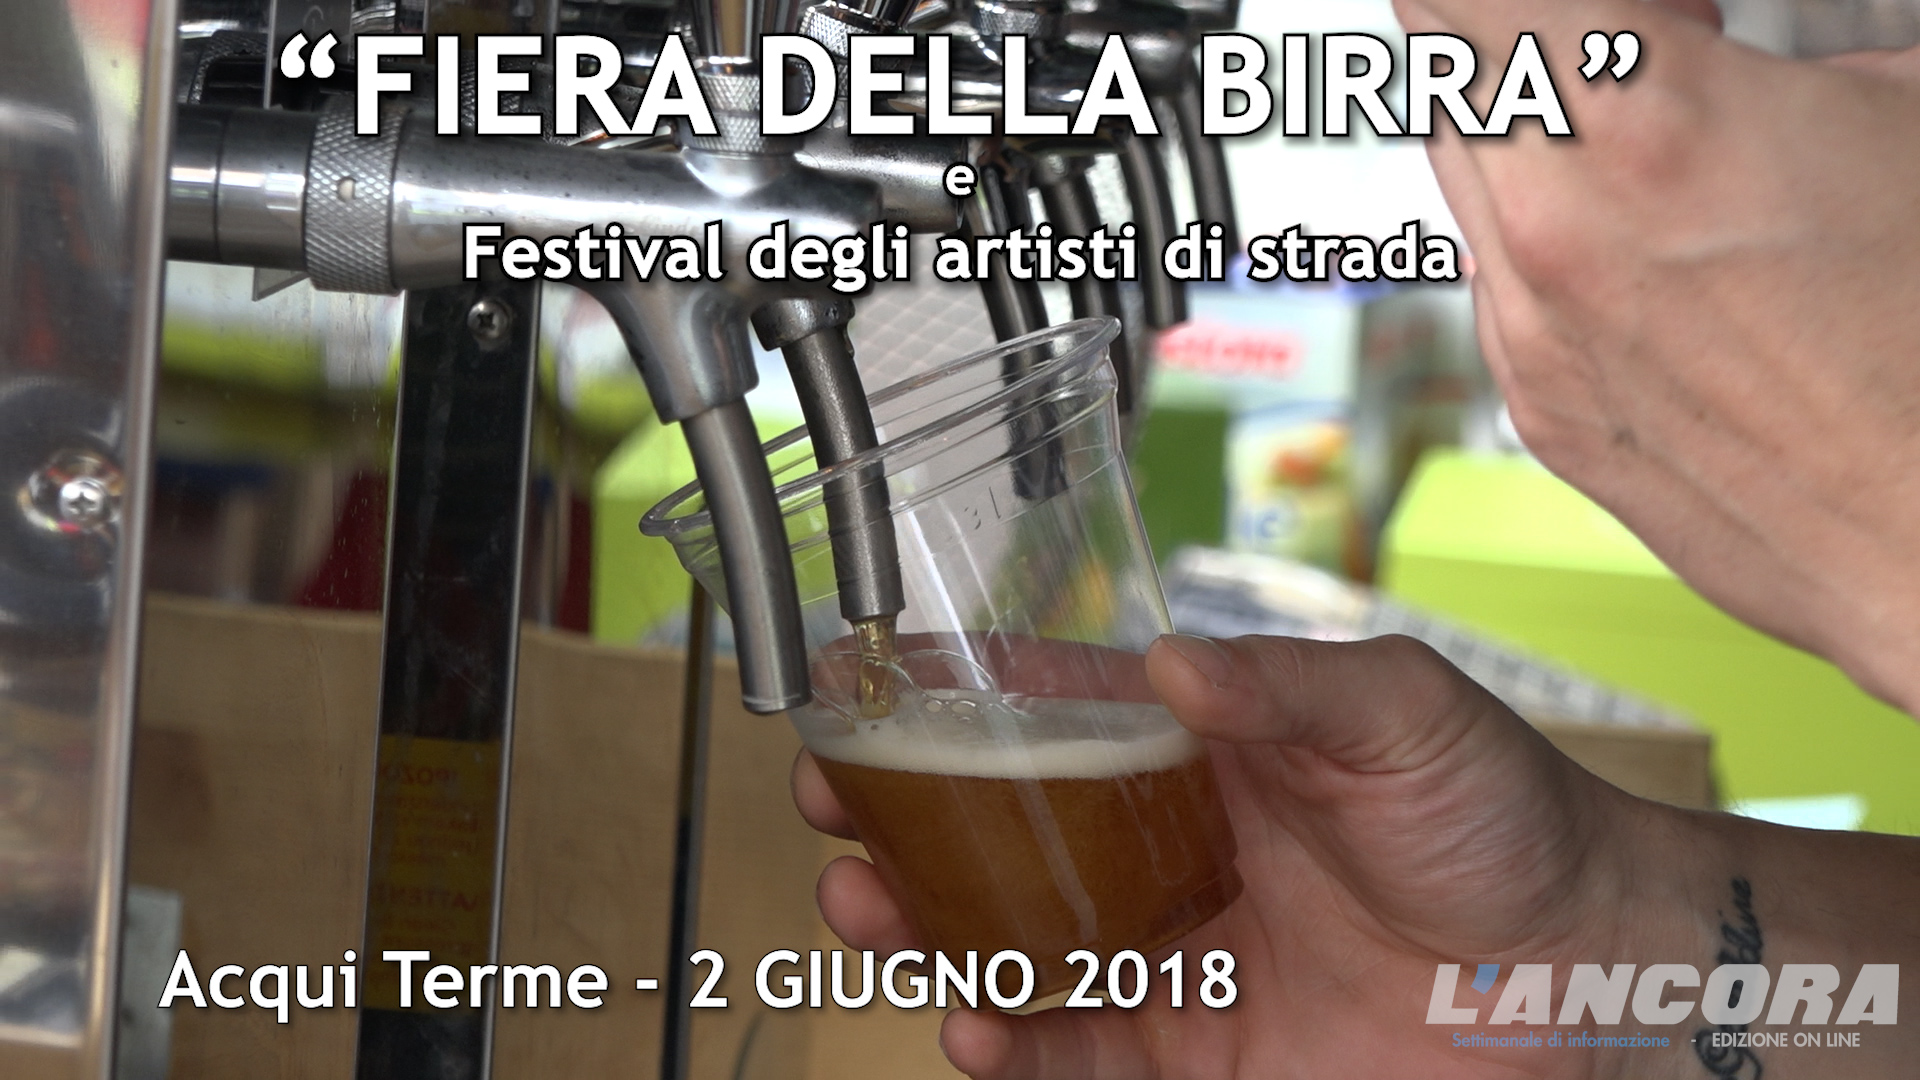 Acqui Terme - Fiera della Birra 2018 (VIDEO)